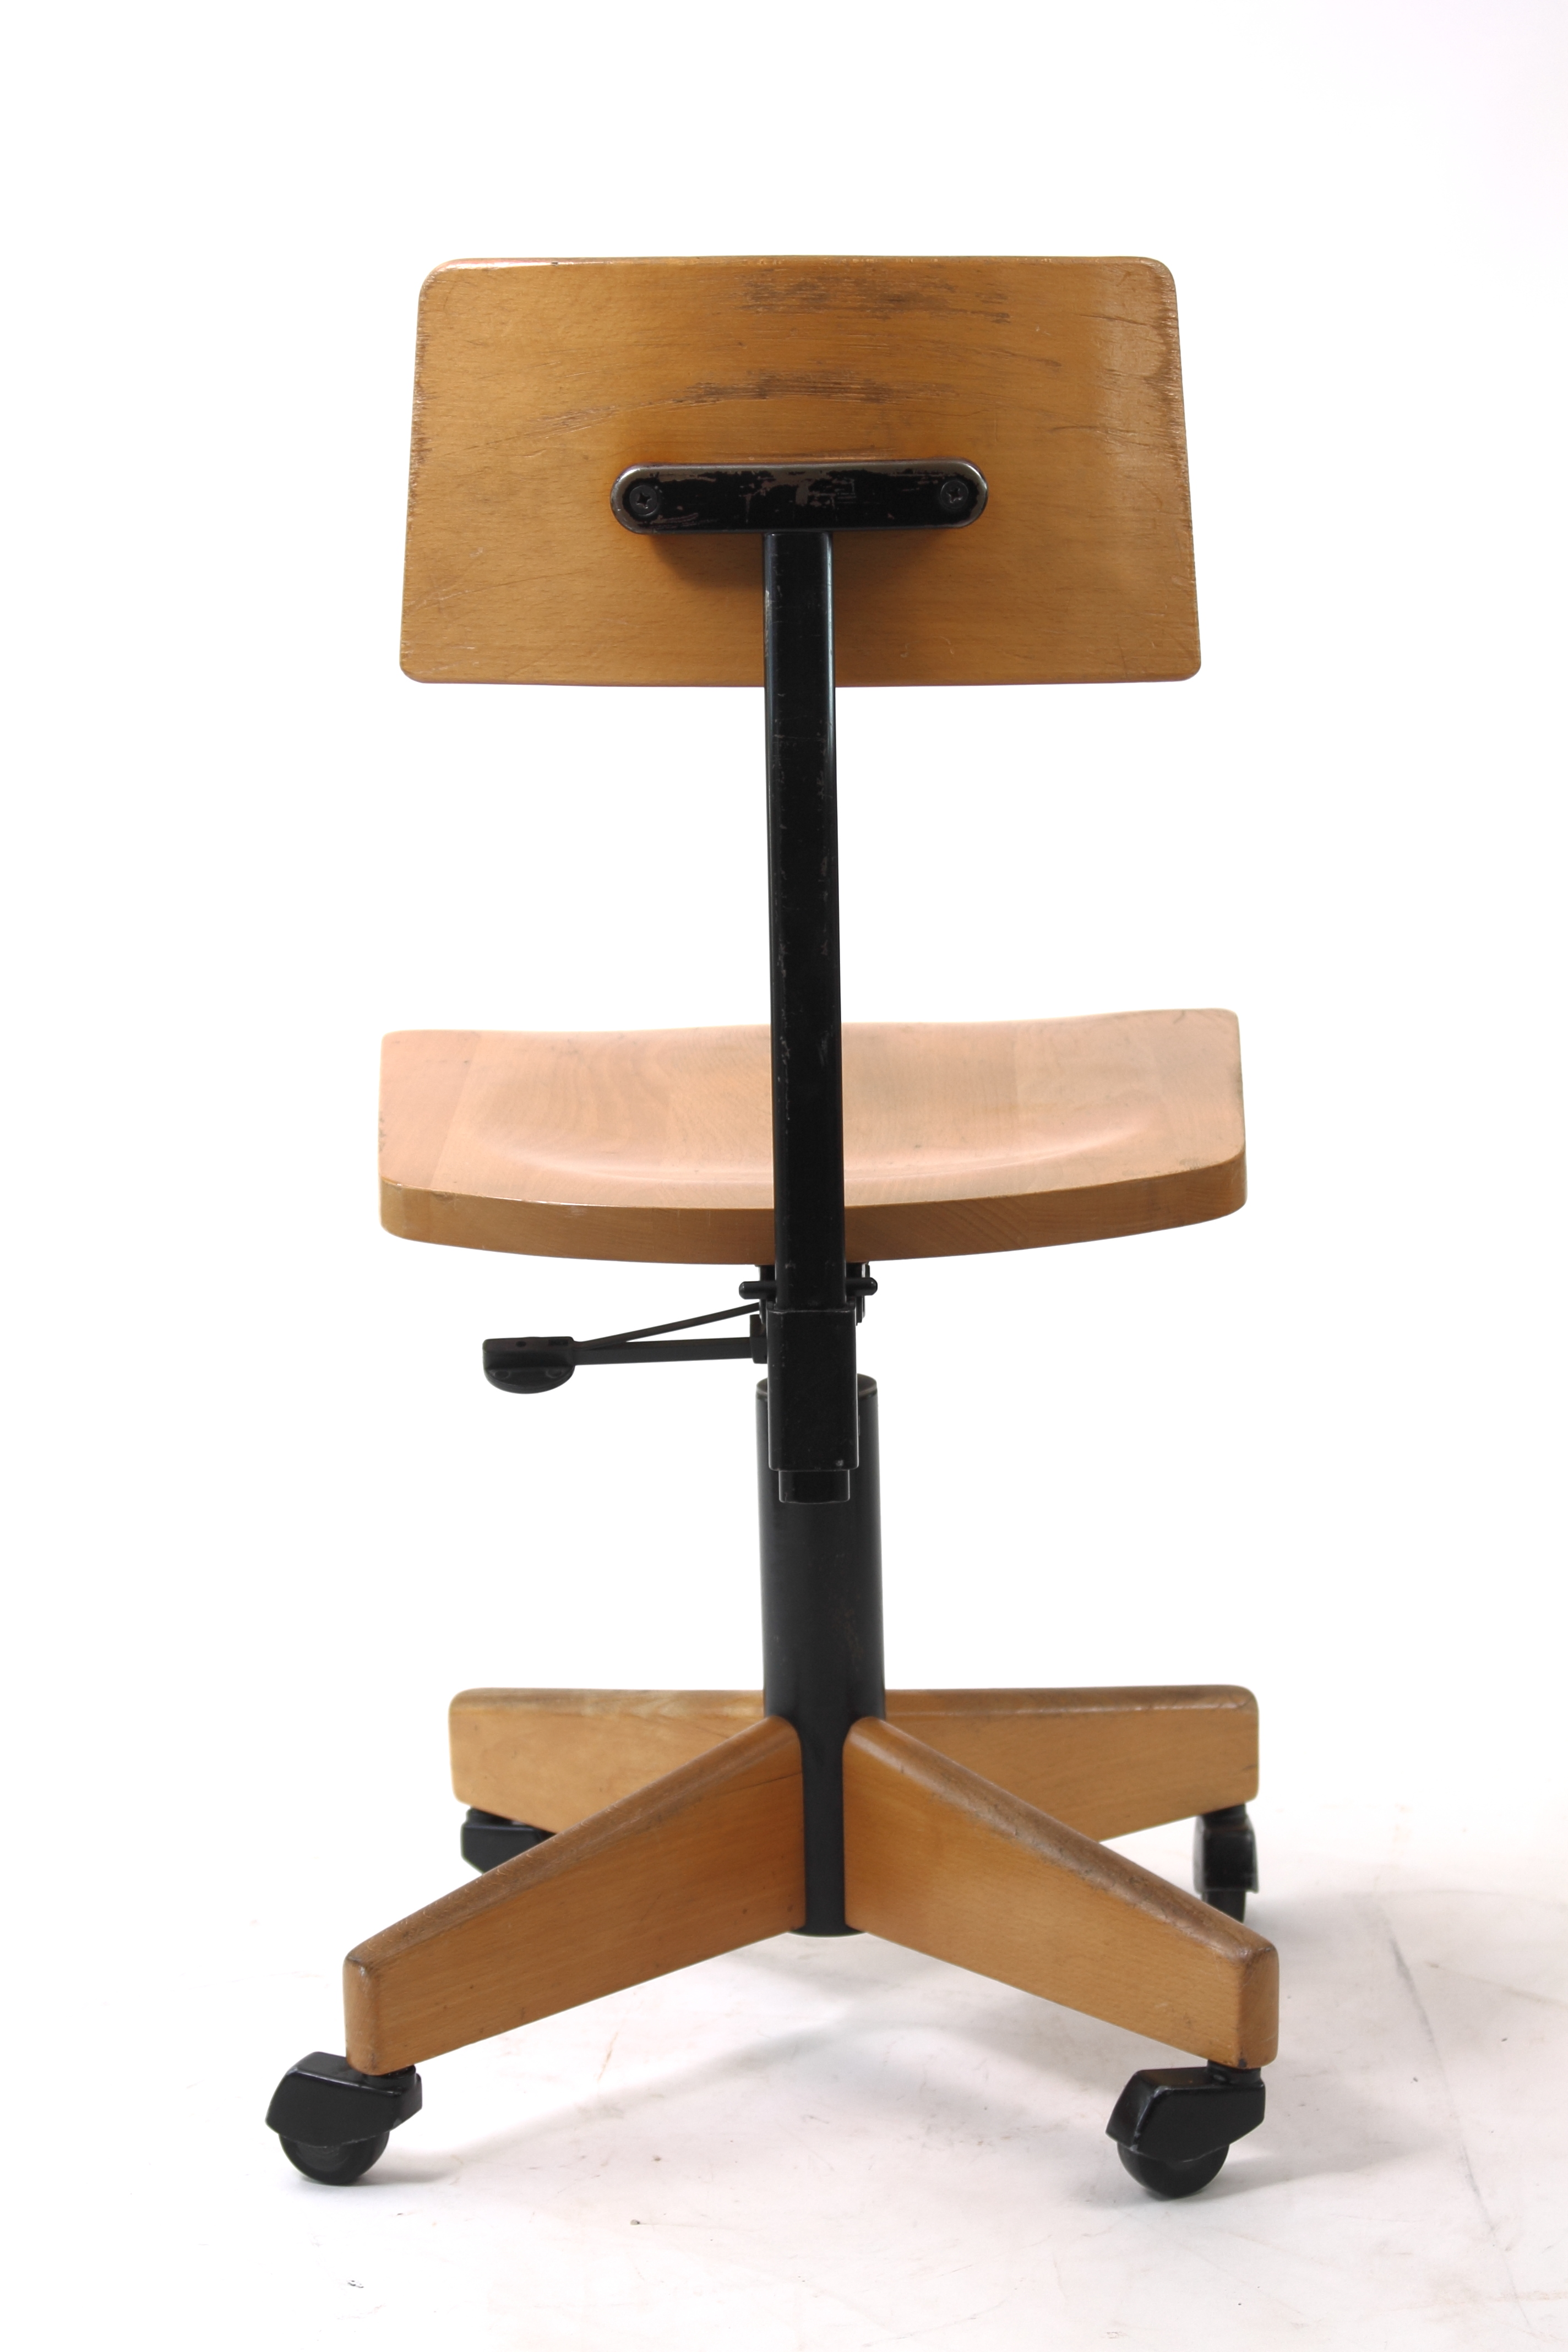 2848x4272 Swivel Chair Stoll Giroflex 60s 70s Architectural Chair Work Chair